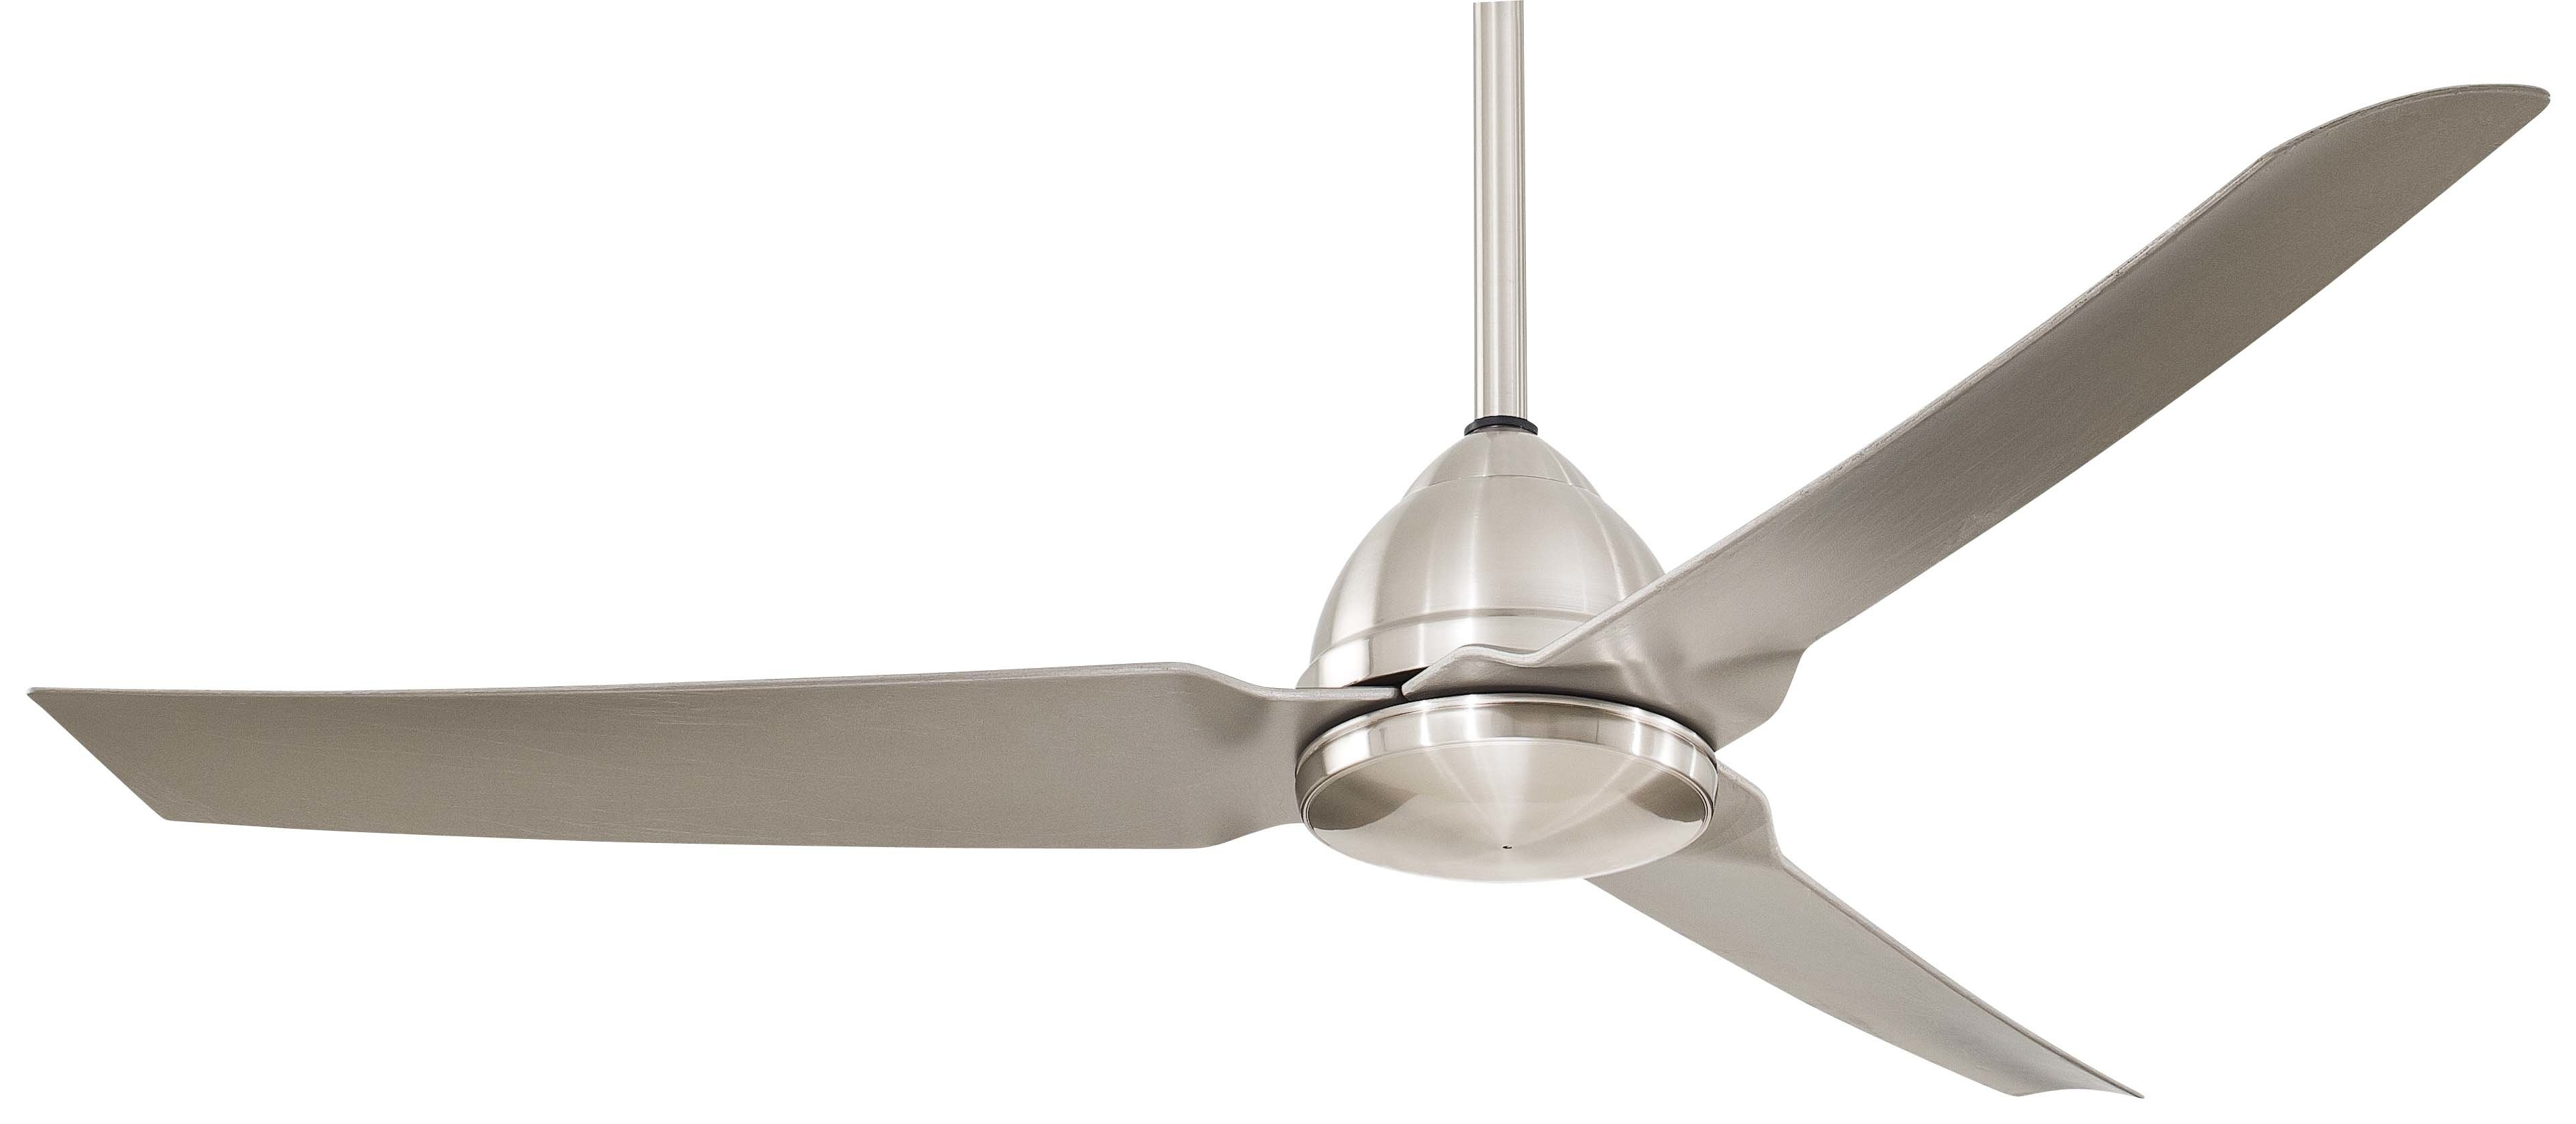 Wayfair For Famous Heavy Duty Outdoor Ceiling Fans (View 12 of 20)